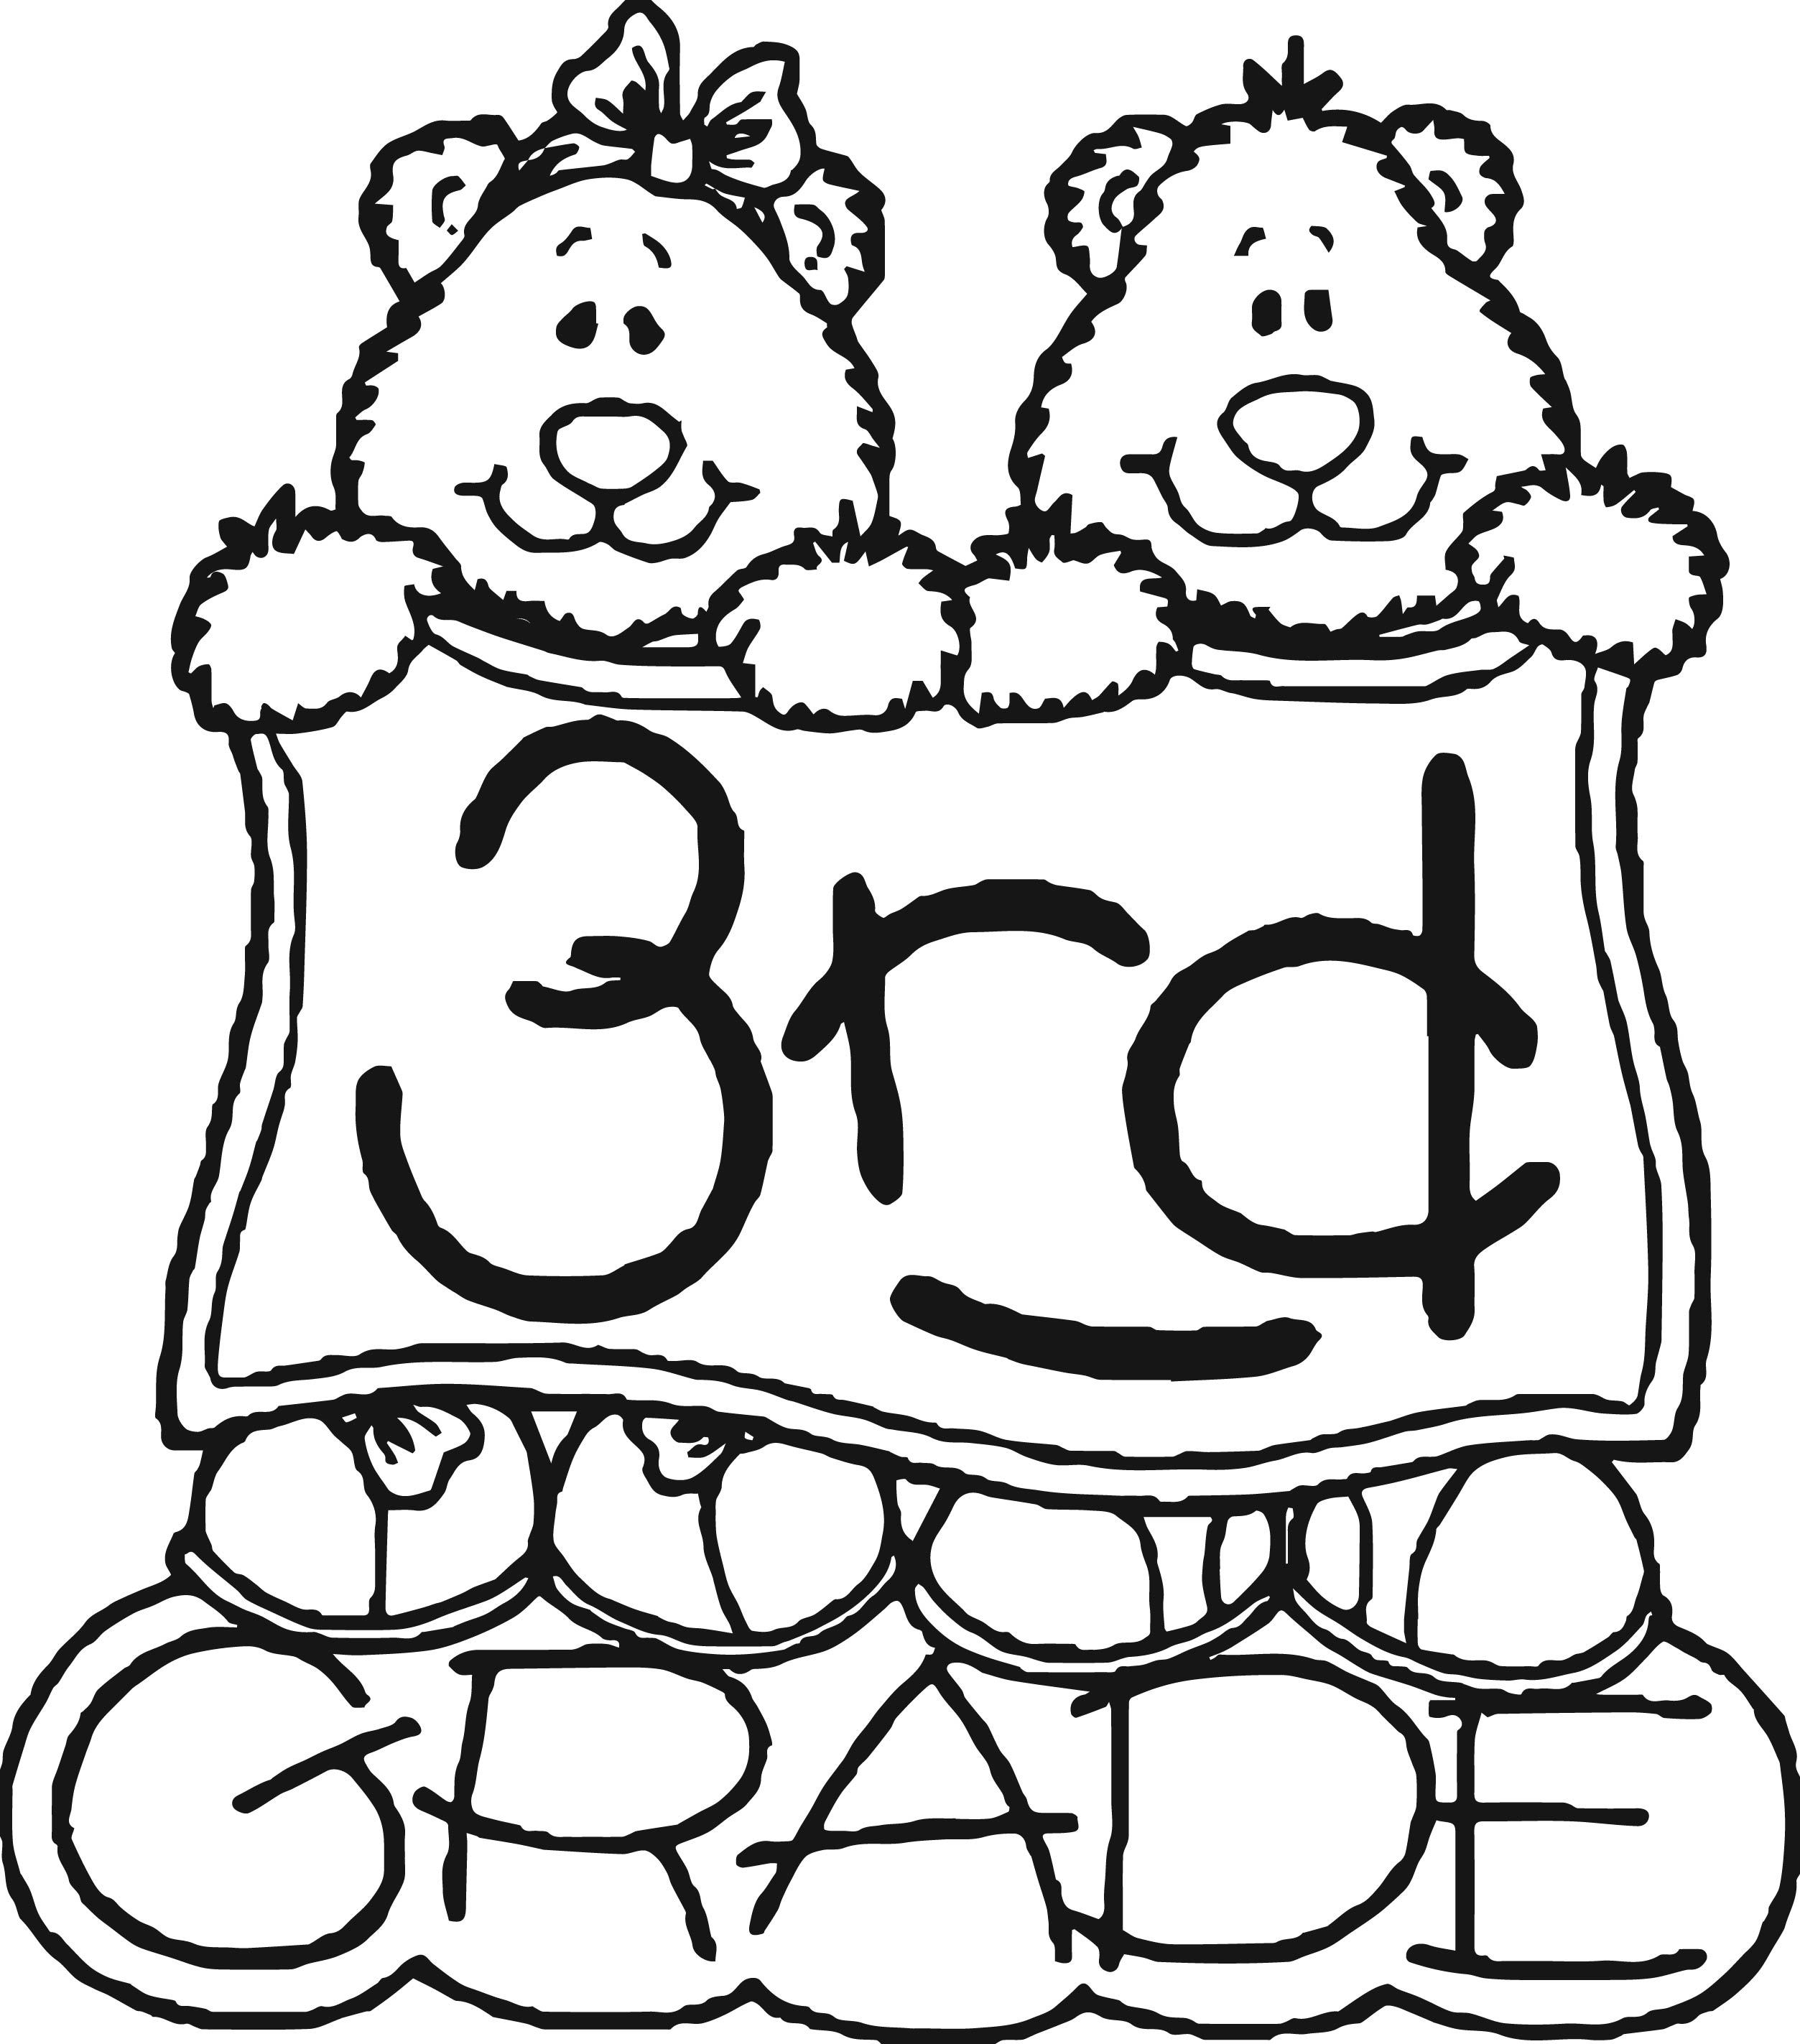 coloring for grade 3 3rd grade coloring pages free download on clipartmag 3 grade coloring for